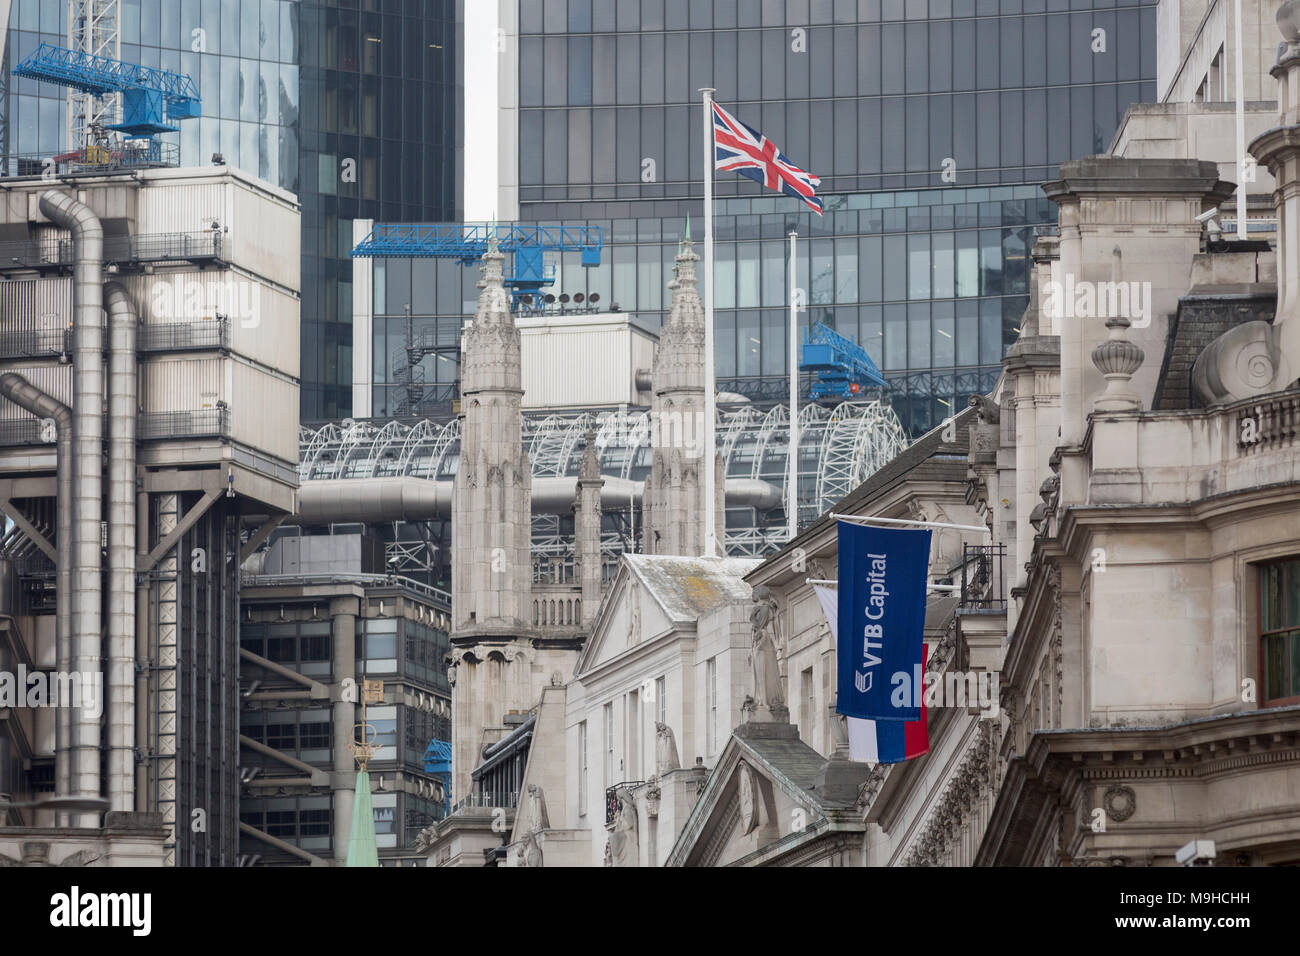 The flags of the Russian Federation and Russian investment Bank VTB Capital hang over banks and other financial institutions in the City of London, the capital's financial district (aka The Square Mile), on 26th March, 2018, in London, England.  VTB Capital operates in London, Singapore, Hong Kong, Sofia, New York, Zug and Frankfurt, with headquarters in Moscow, VTB Group's Corporate Investment Business is a leader in the international investment banking sector in Russia. - Stock Image